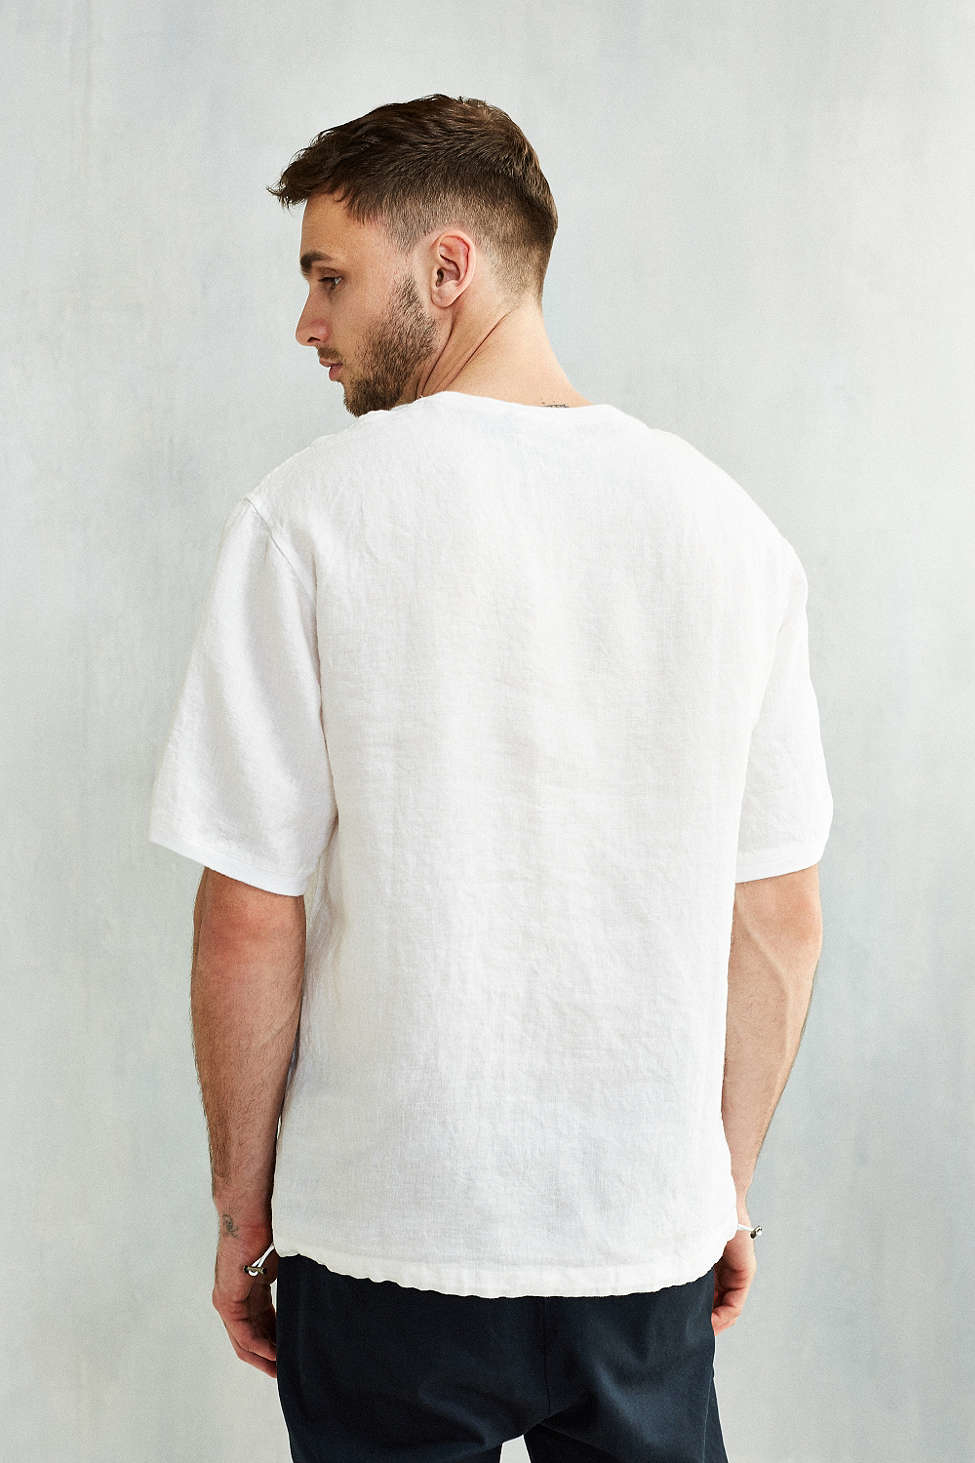 96a41fb126bc9 Lyst - Shades of Grey by Micah Cohen Woven Linen Tee in White for Men